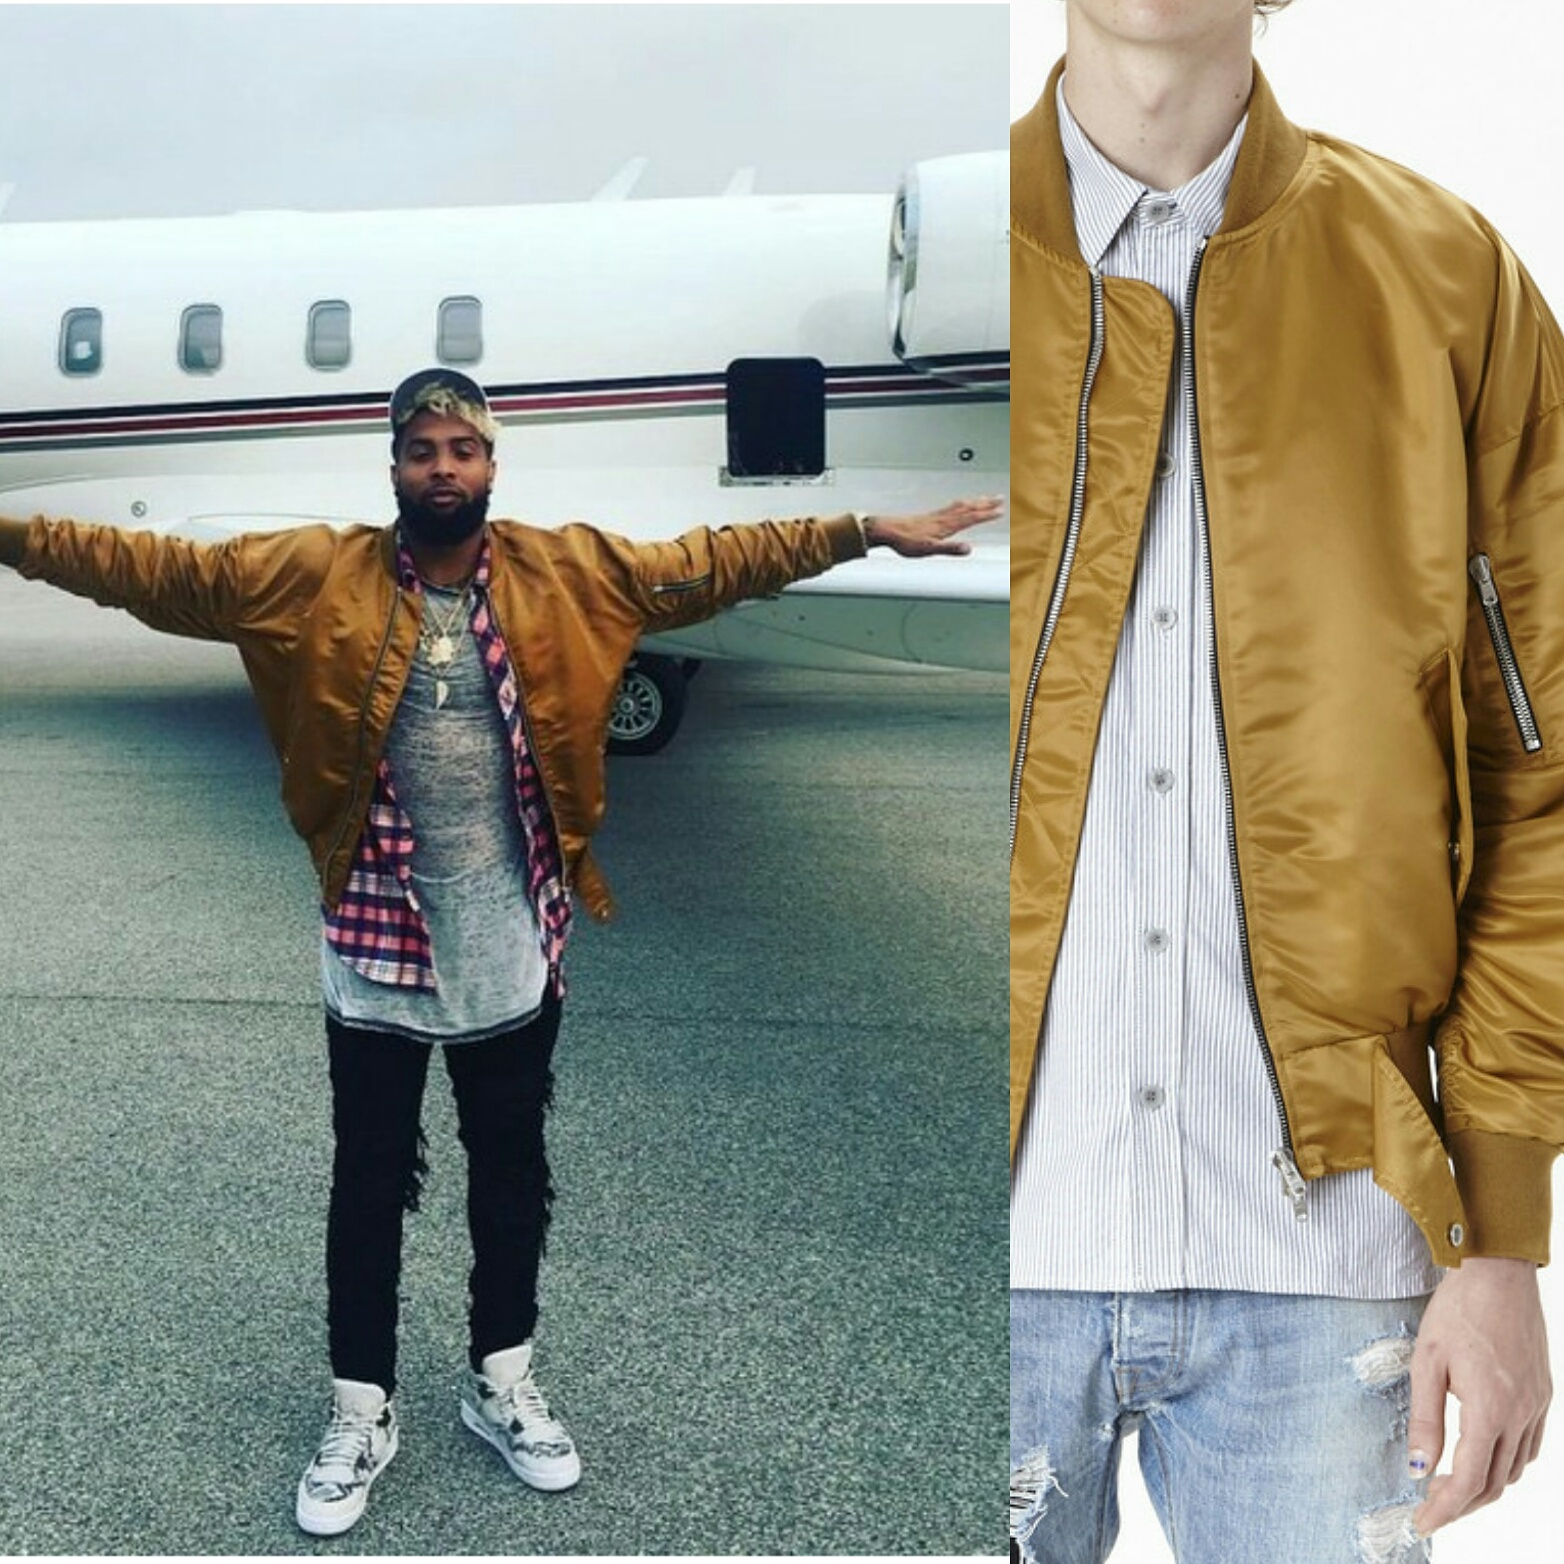 STYLE: Odell Beckham Jr's Instagram Fear Of God Bomber Jacket